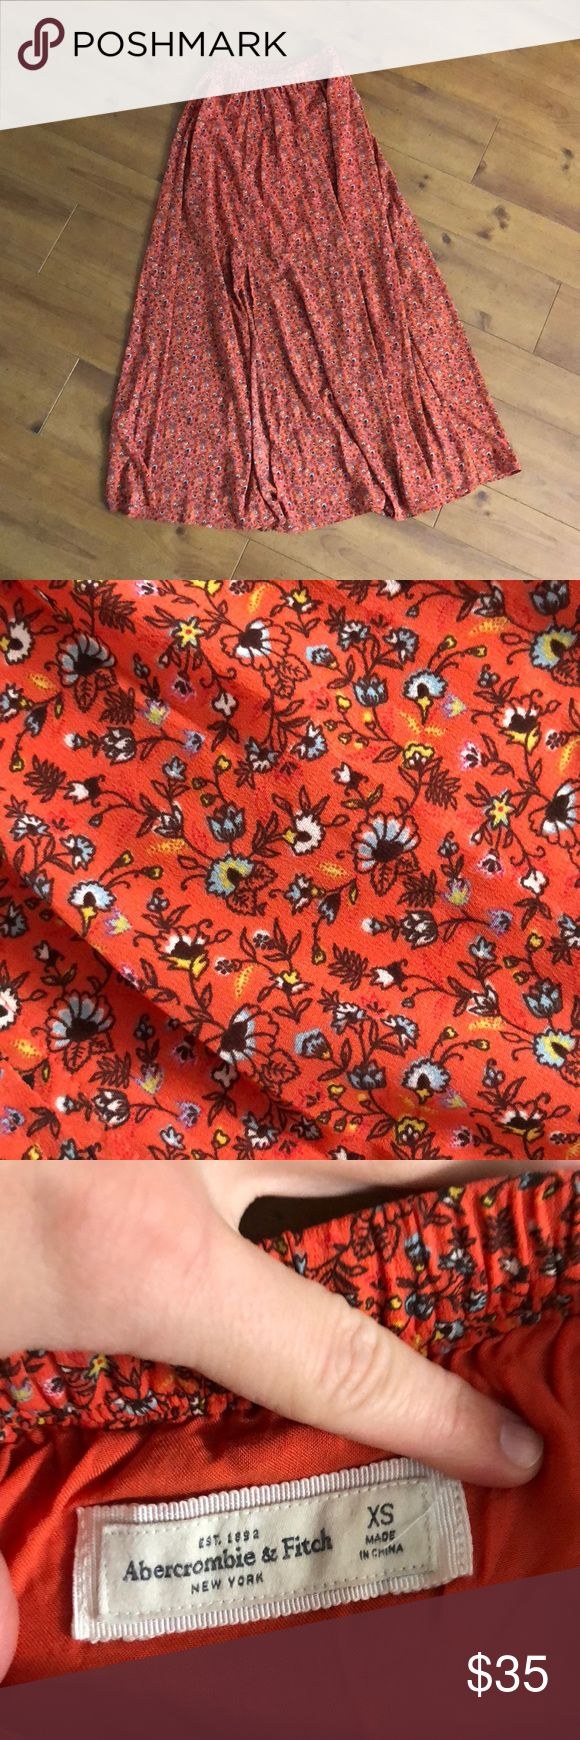 Floral maxi skirt A&F floral maxi skirt. I consider it a salmon color, others say it's red.  Soft and flowy and layered.  Not super heavy but not super lightweight either.  Hidden side slit and lined on top.  Elastic waist band and sits at smallest part of waist.  Only worn a couple times. (So cute with graphic tees!) So cute and I hate to get rid of it! Abercrombie & Fitch Skirts Maxi